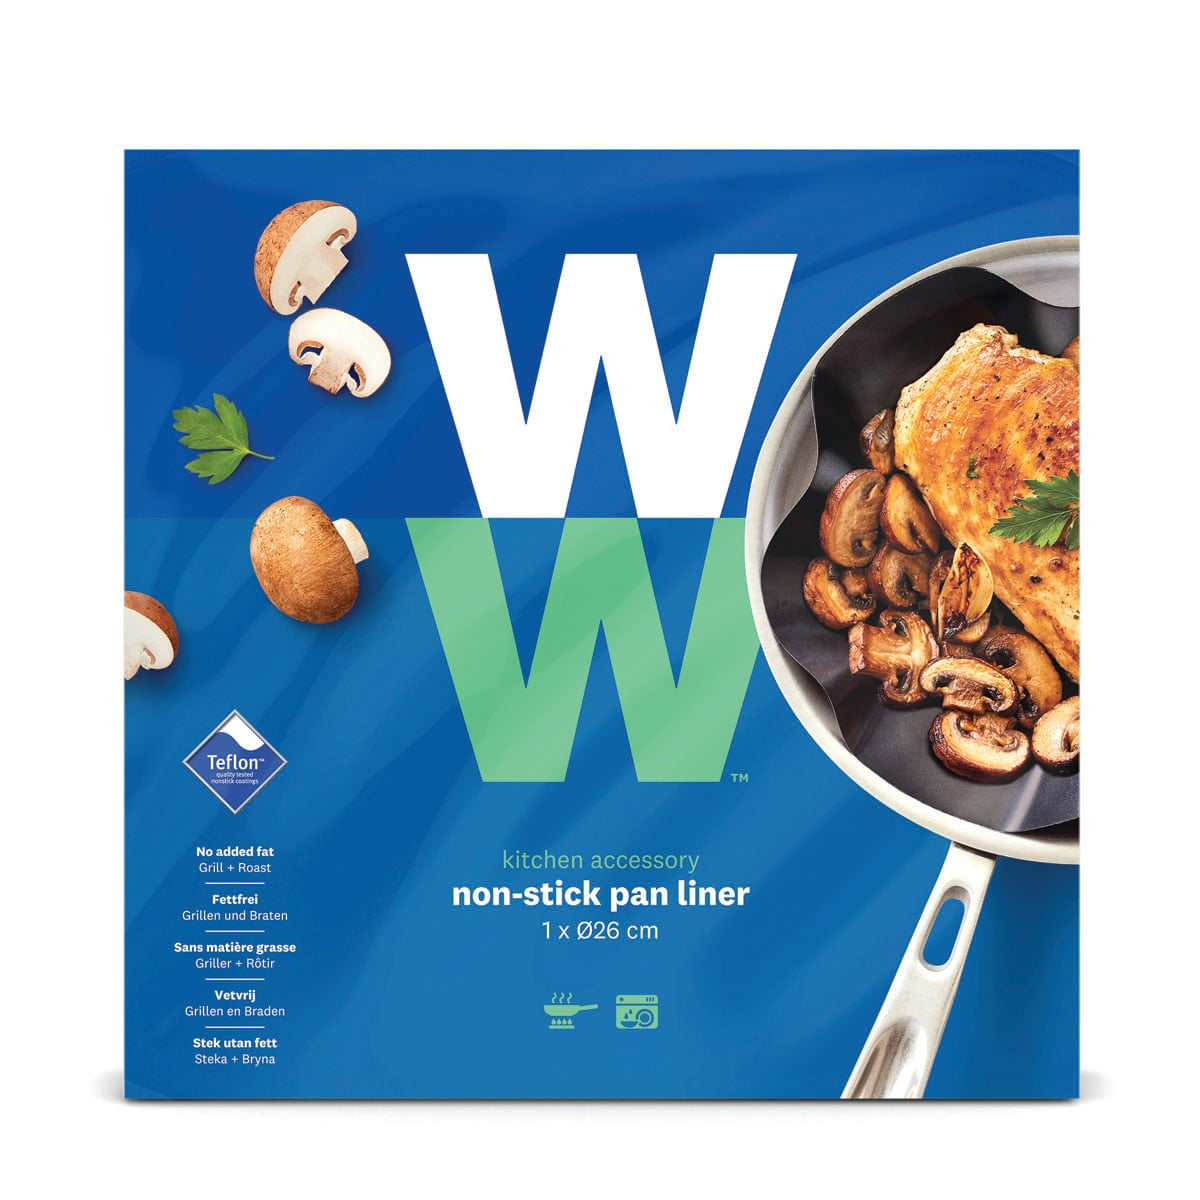 Durable, Teflon®-coated non-stick WW Frying Pan Liner for grease-free frying, washable and reusable, easy to wash, dishwasher safe